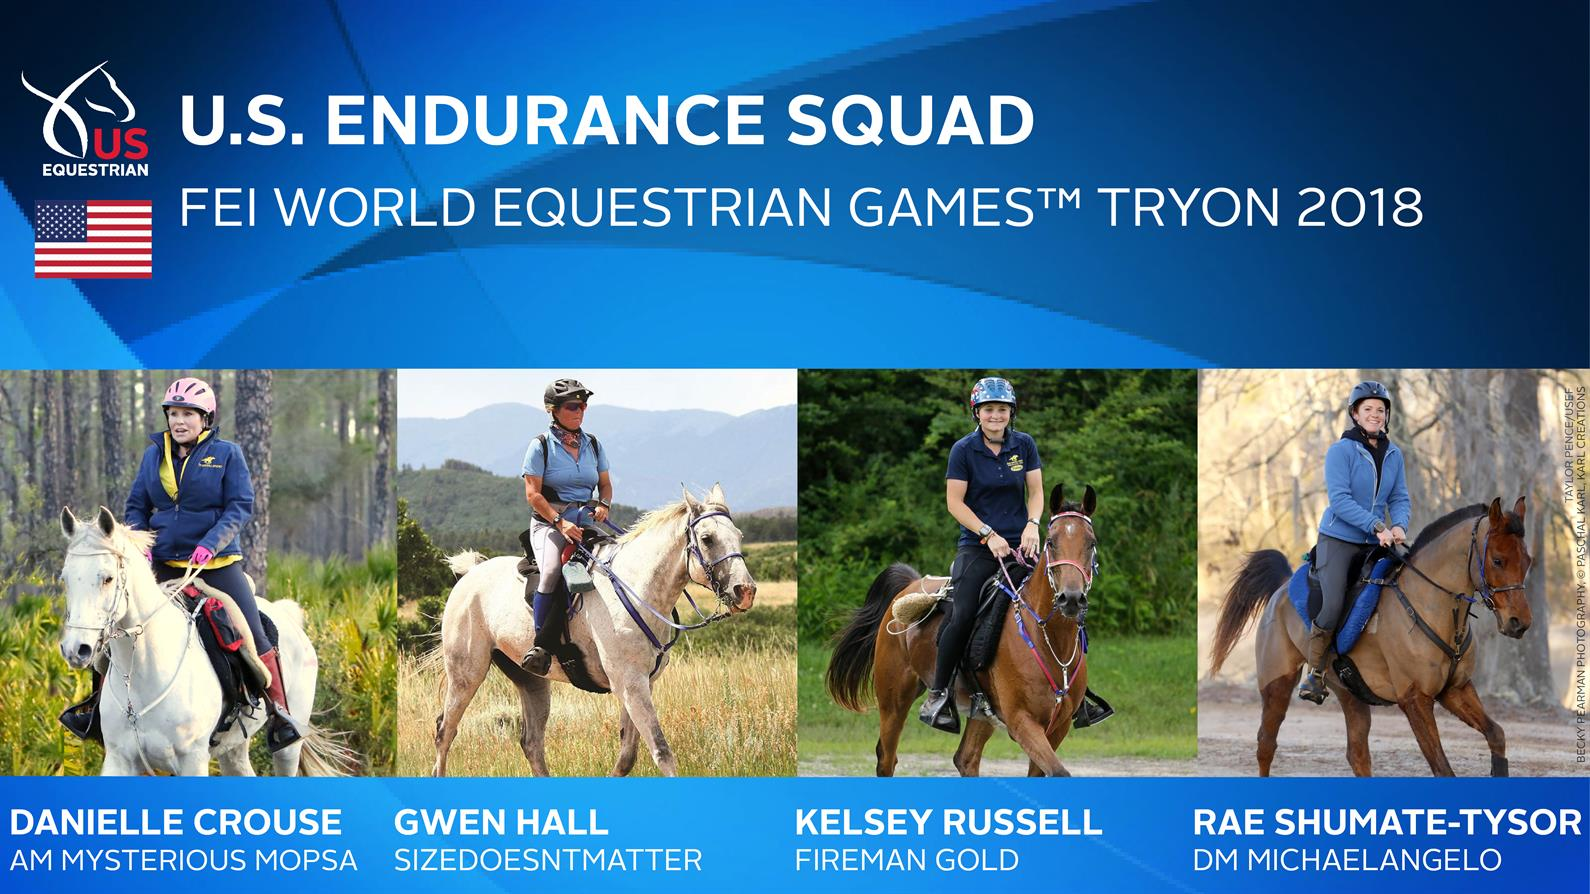 U.S. Endurance team for the 2018 WEG